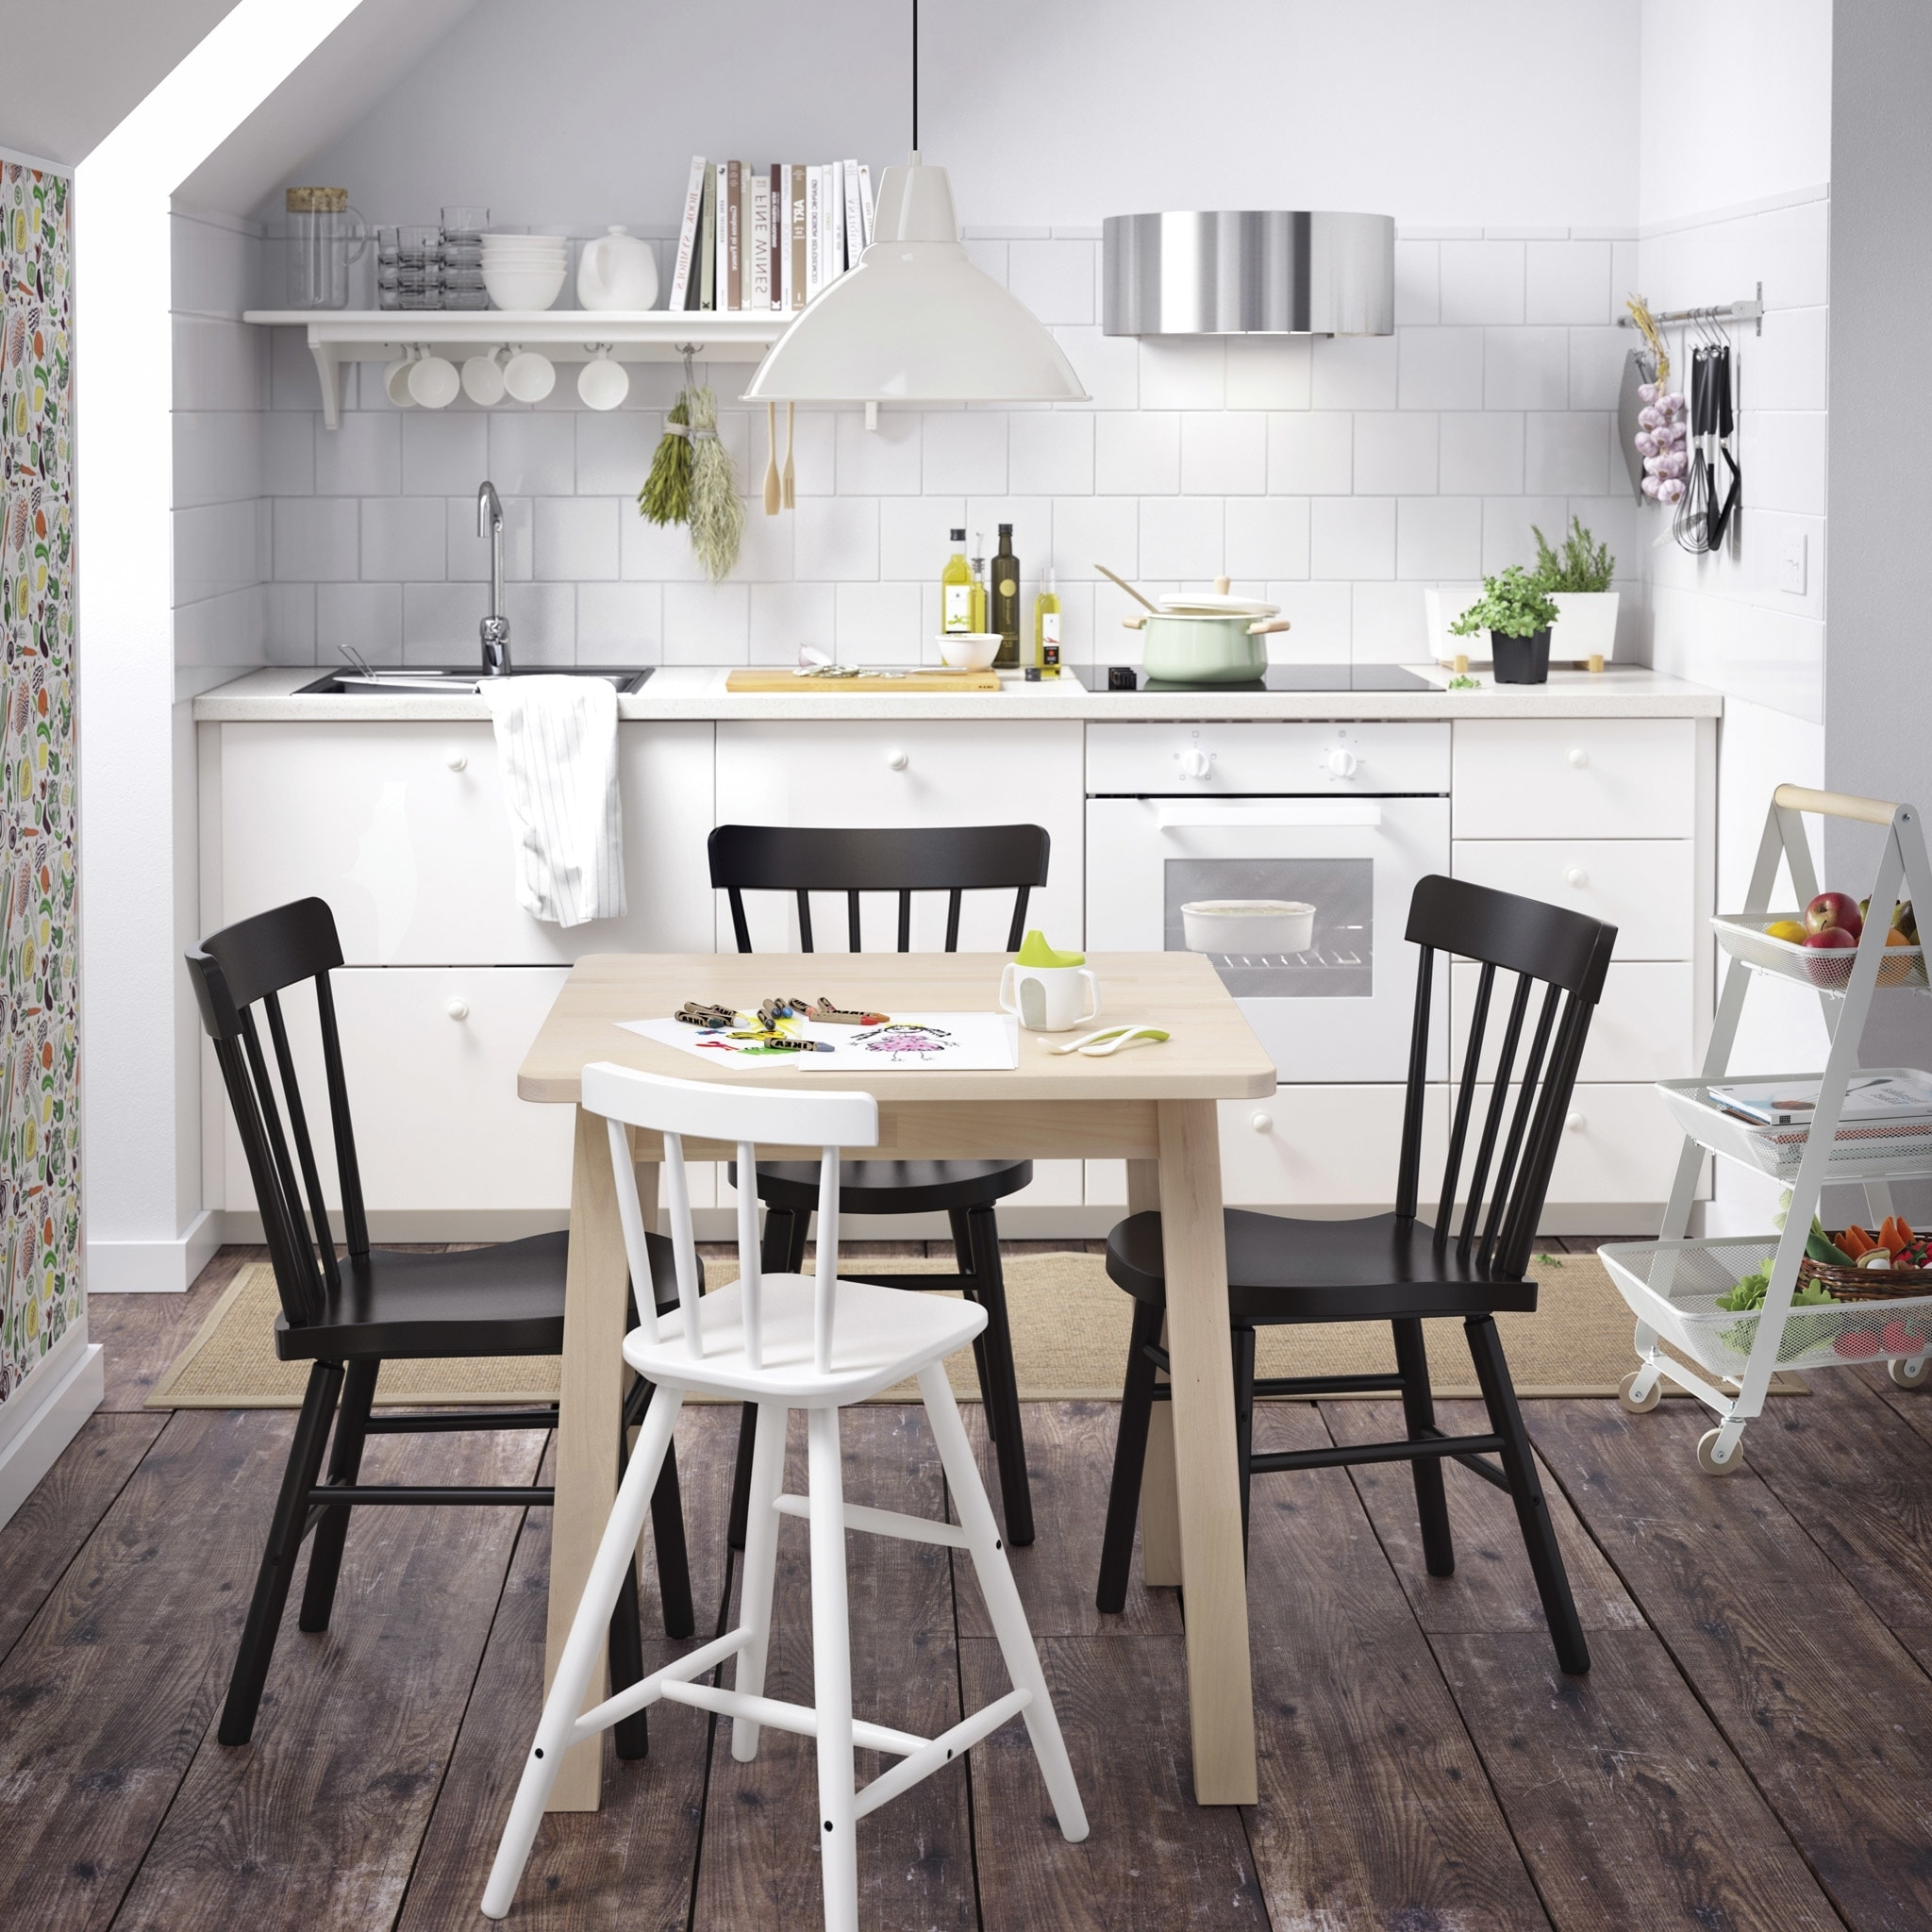 Current Dining Room Furniture & Ideas (Gallery 6 of 25)